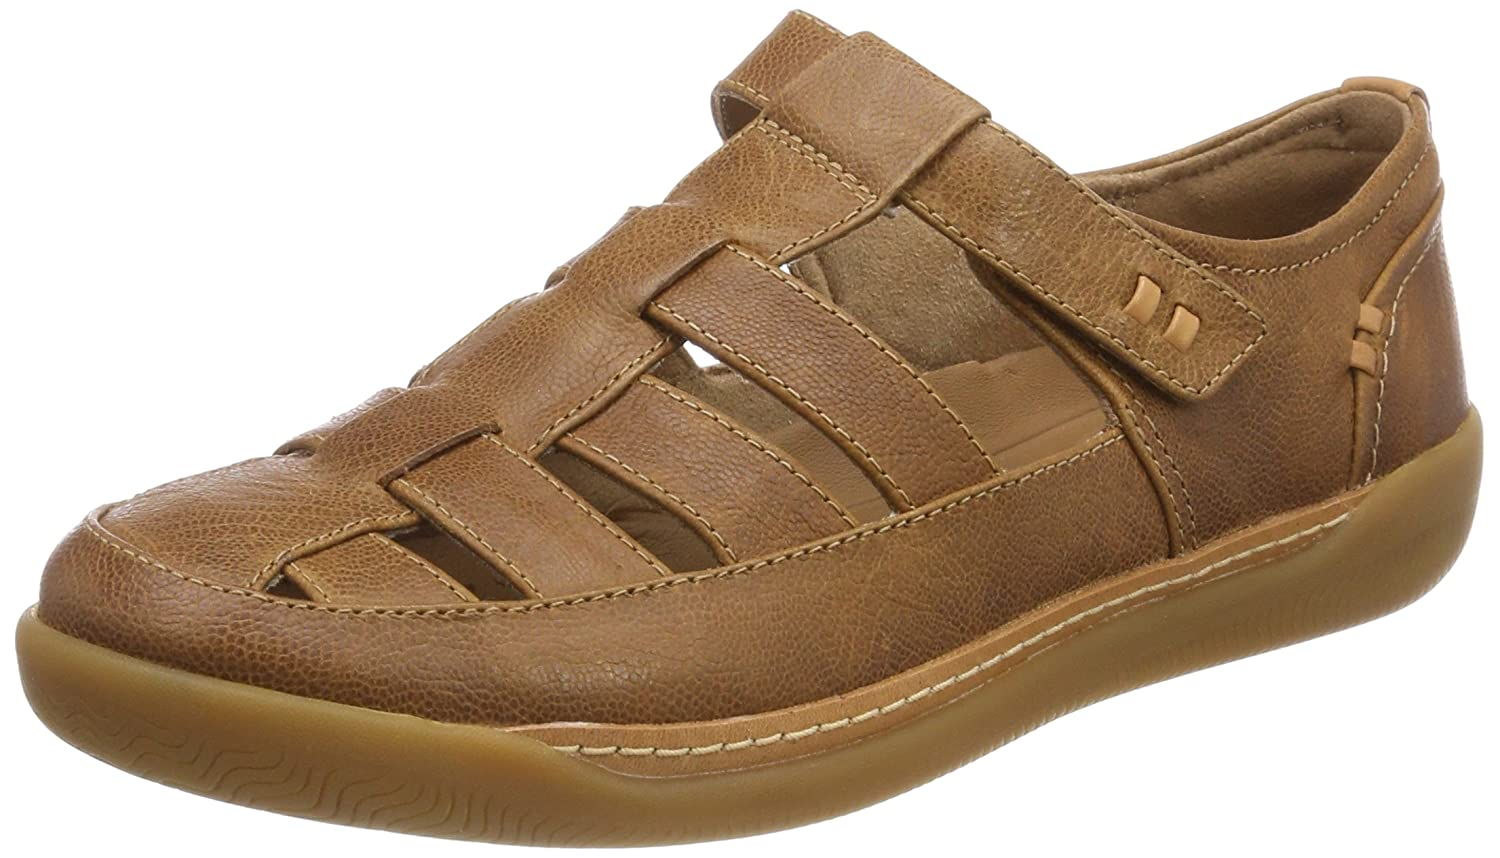 Clarks - Un casual Haven Chaussures Cove - Un Chaussures casual - Femme Brun (Dark Tan Lea) cf8a60c - automatisms.space